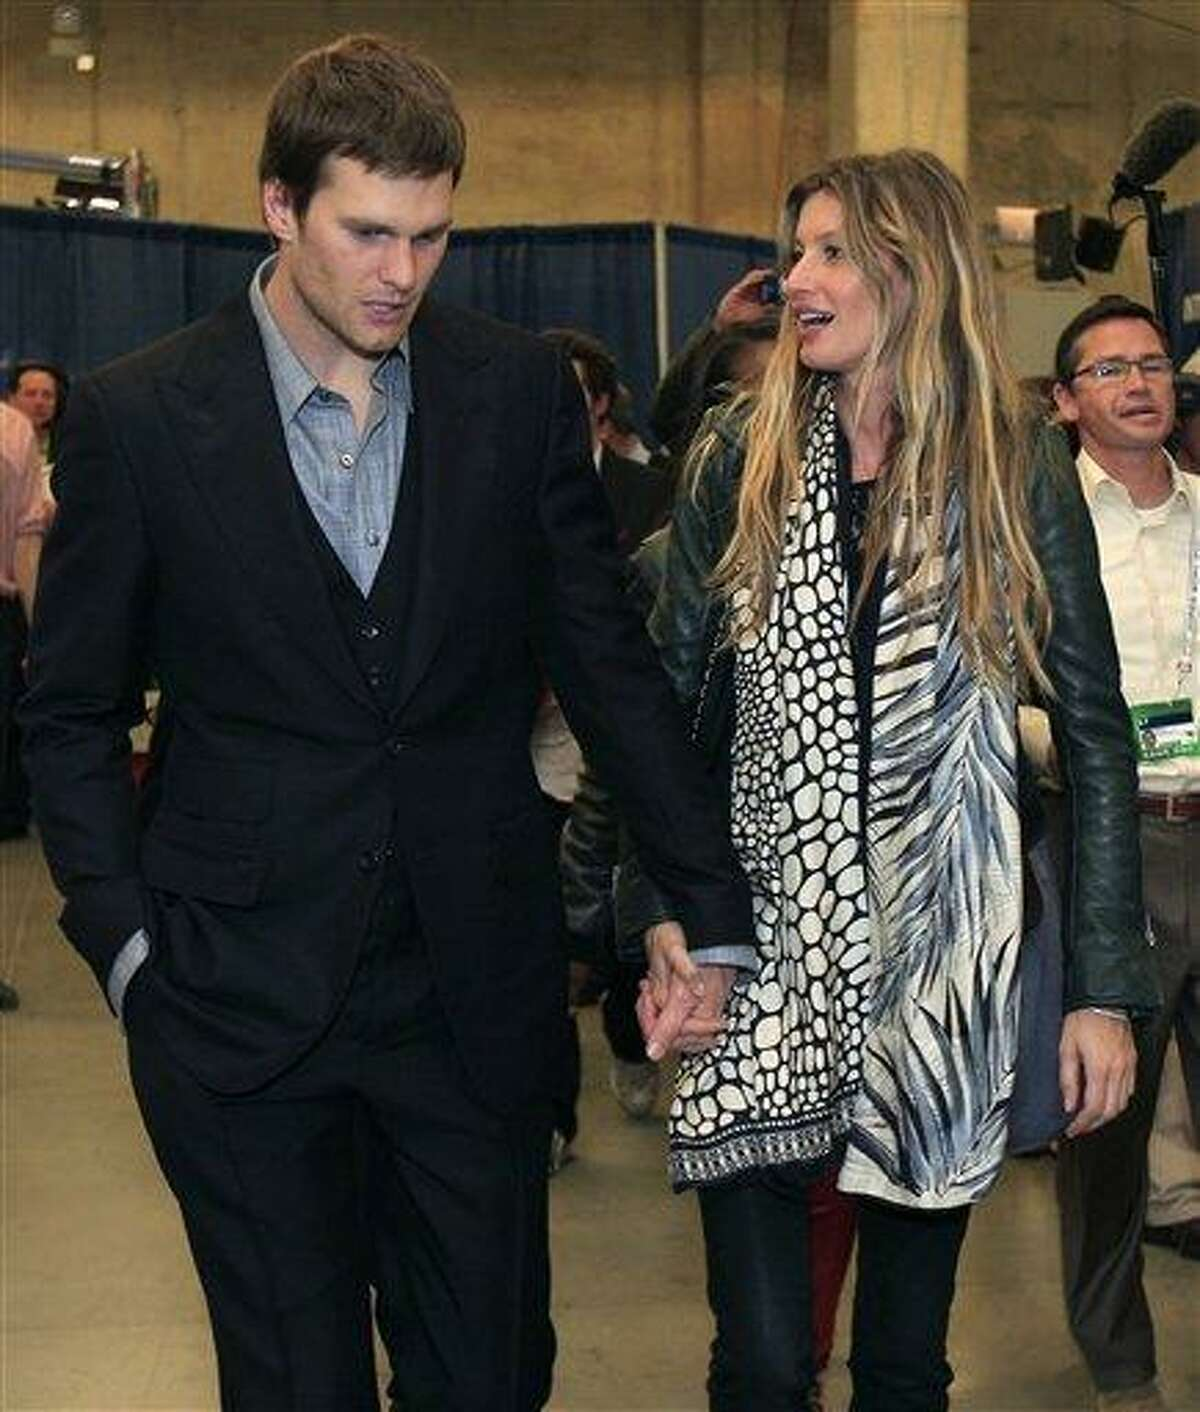 New England Patriots quarterback Tom Brady and his wife, supermodel Gisele Bundchen, leave the stadium after the Patriots lost 21-17 to the New York Giants in the NFL Super Bowl XLVI football game Sunday in Indianapolis. Associated Press